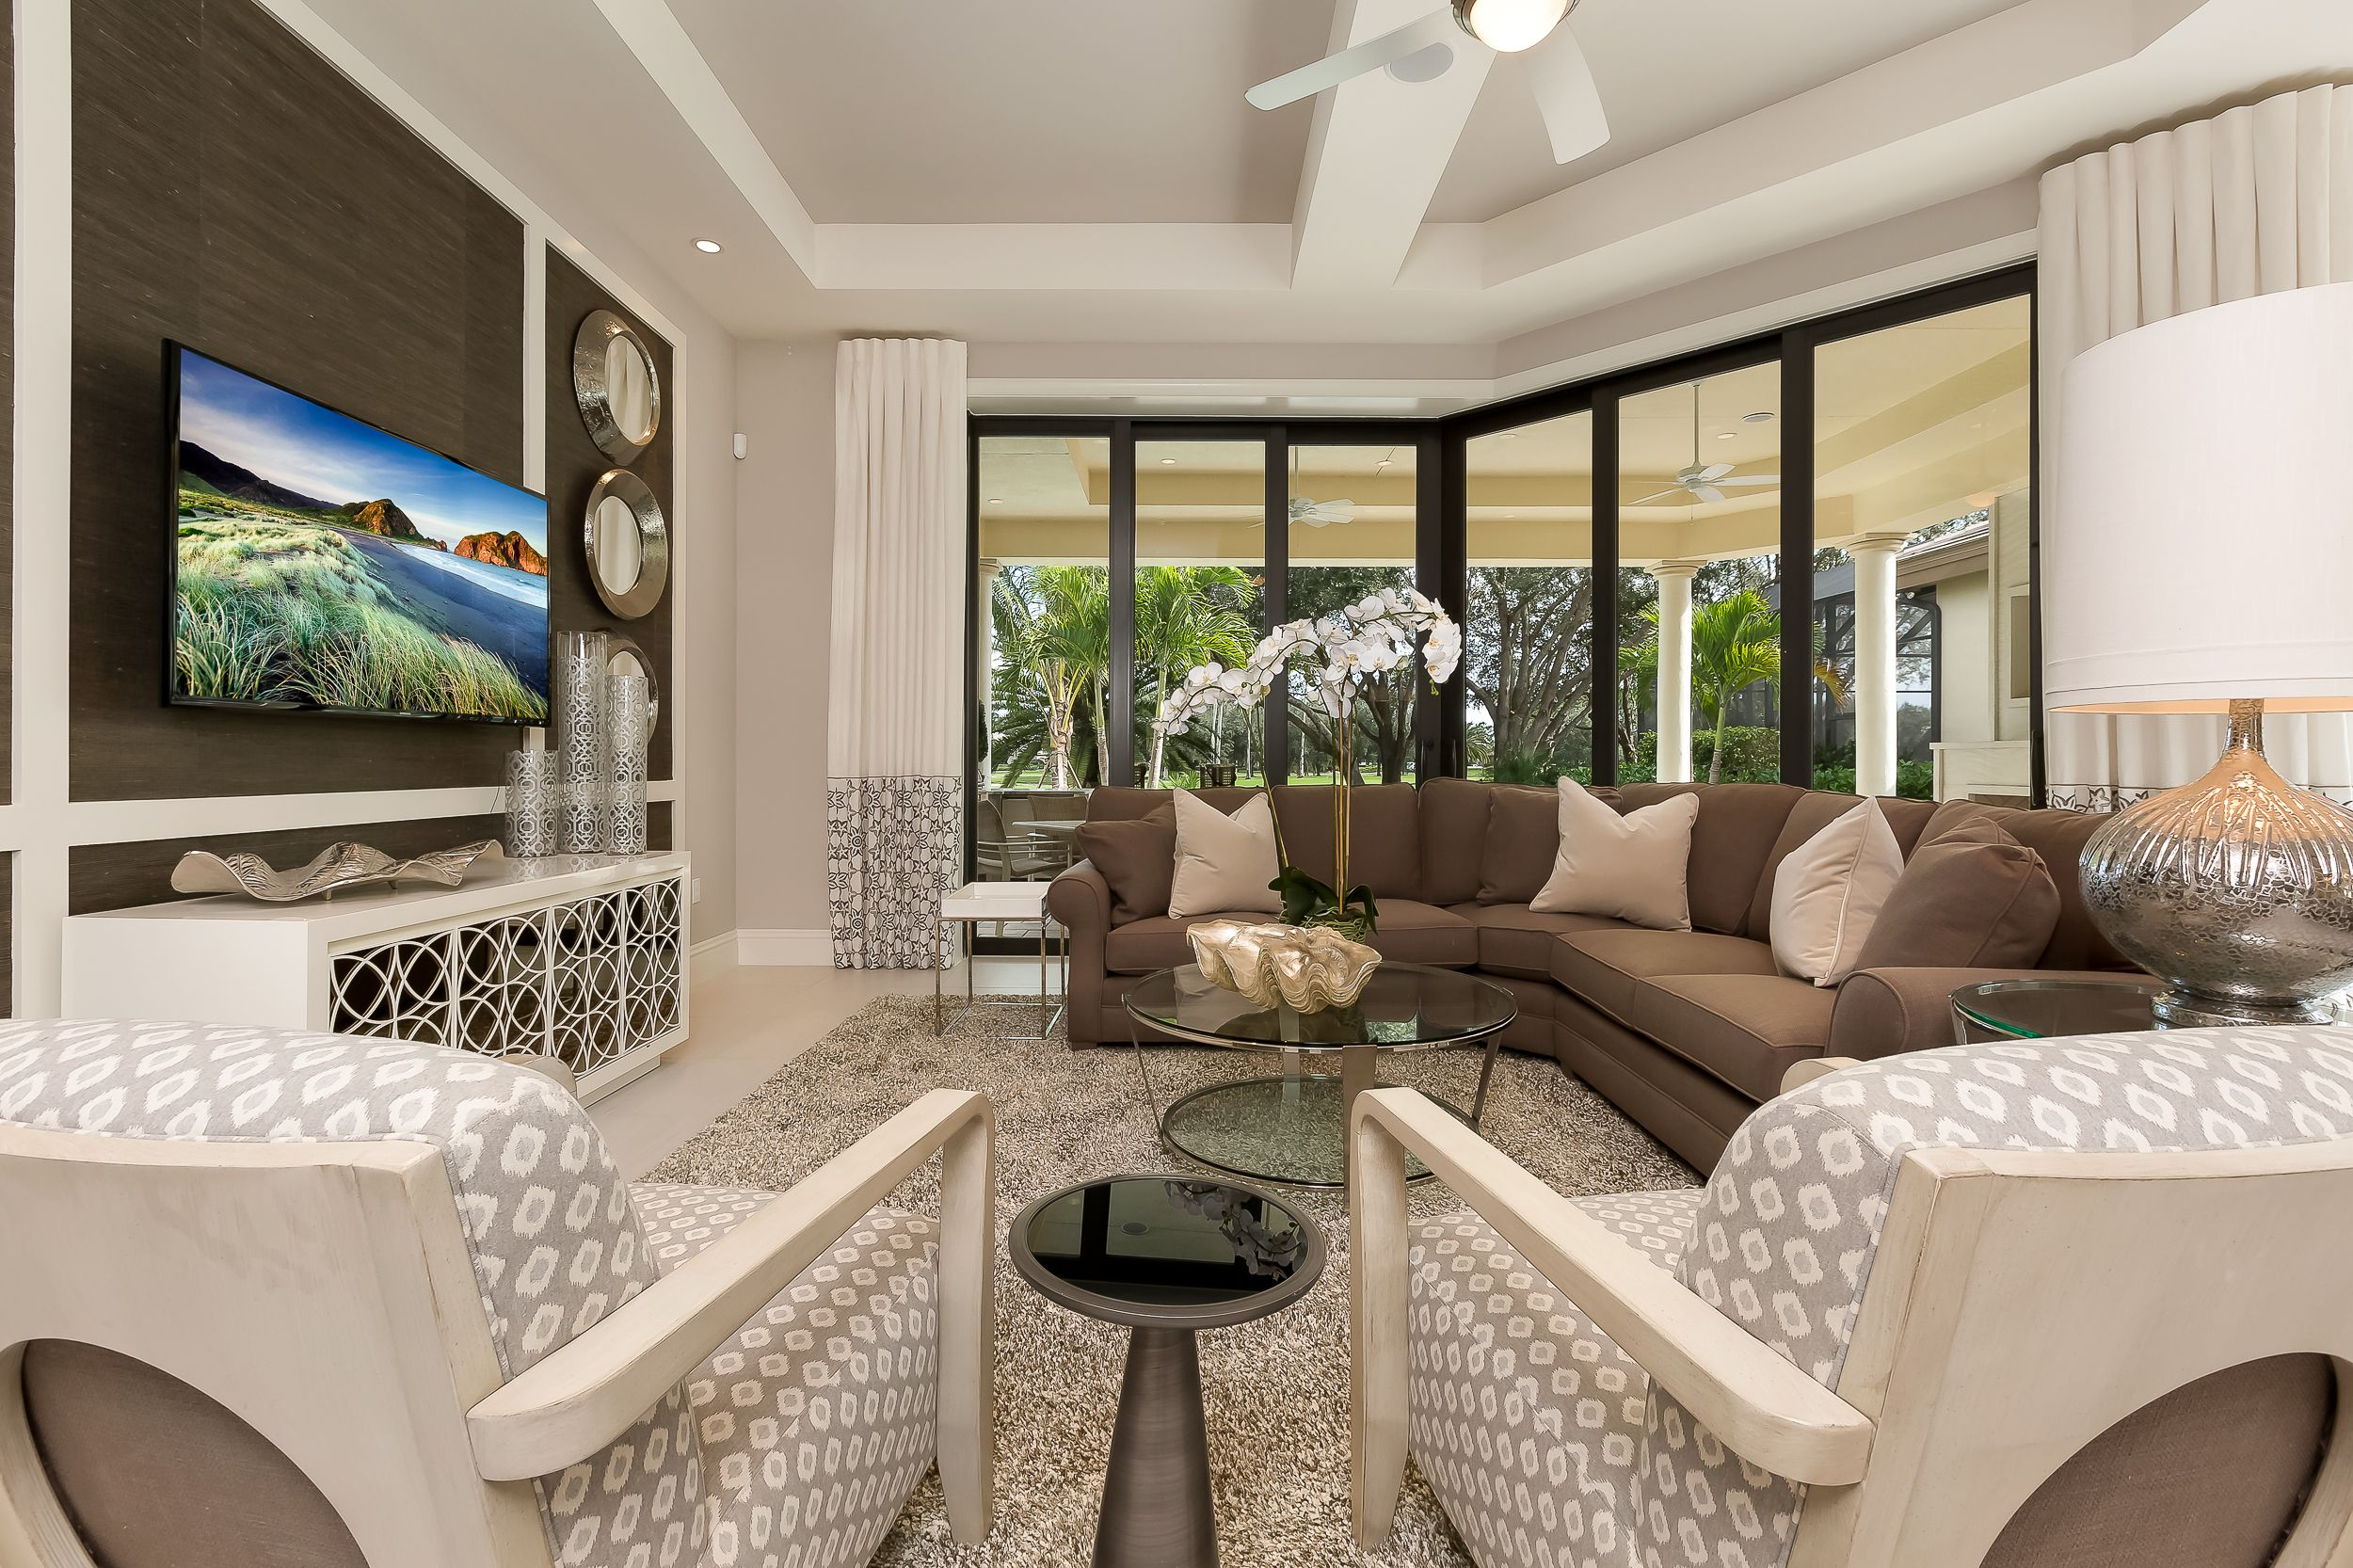 Frenchinspired living room Cipriani model home at Quail West by